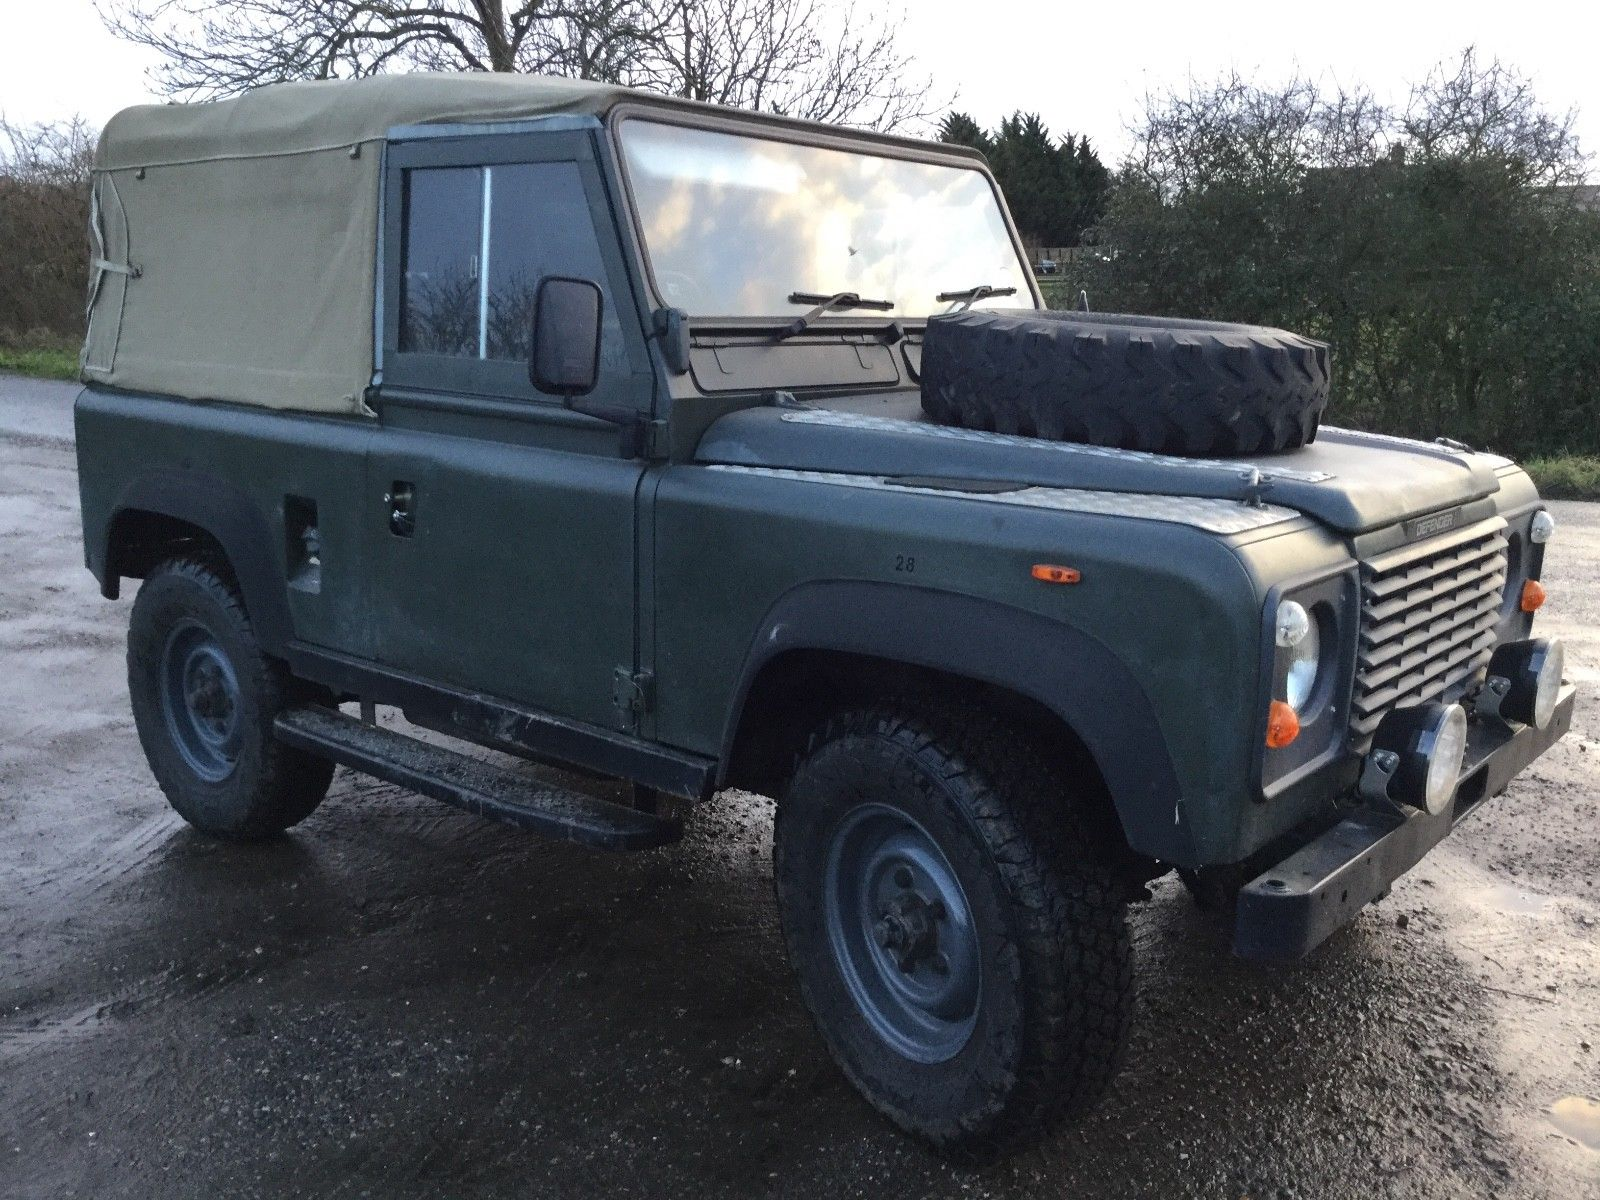 Landrover Defender Land Rover 90 Superb And Smart Ex Clutch Older Invoices In File To Show Brakes Calipers Work